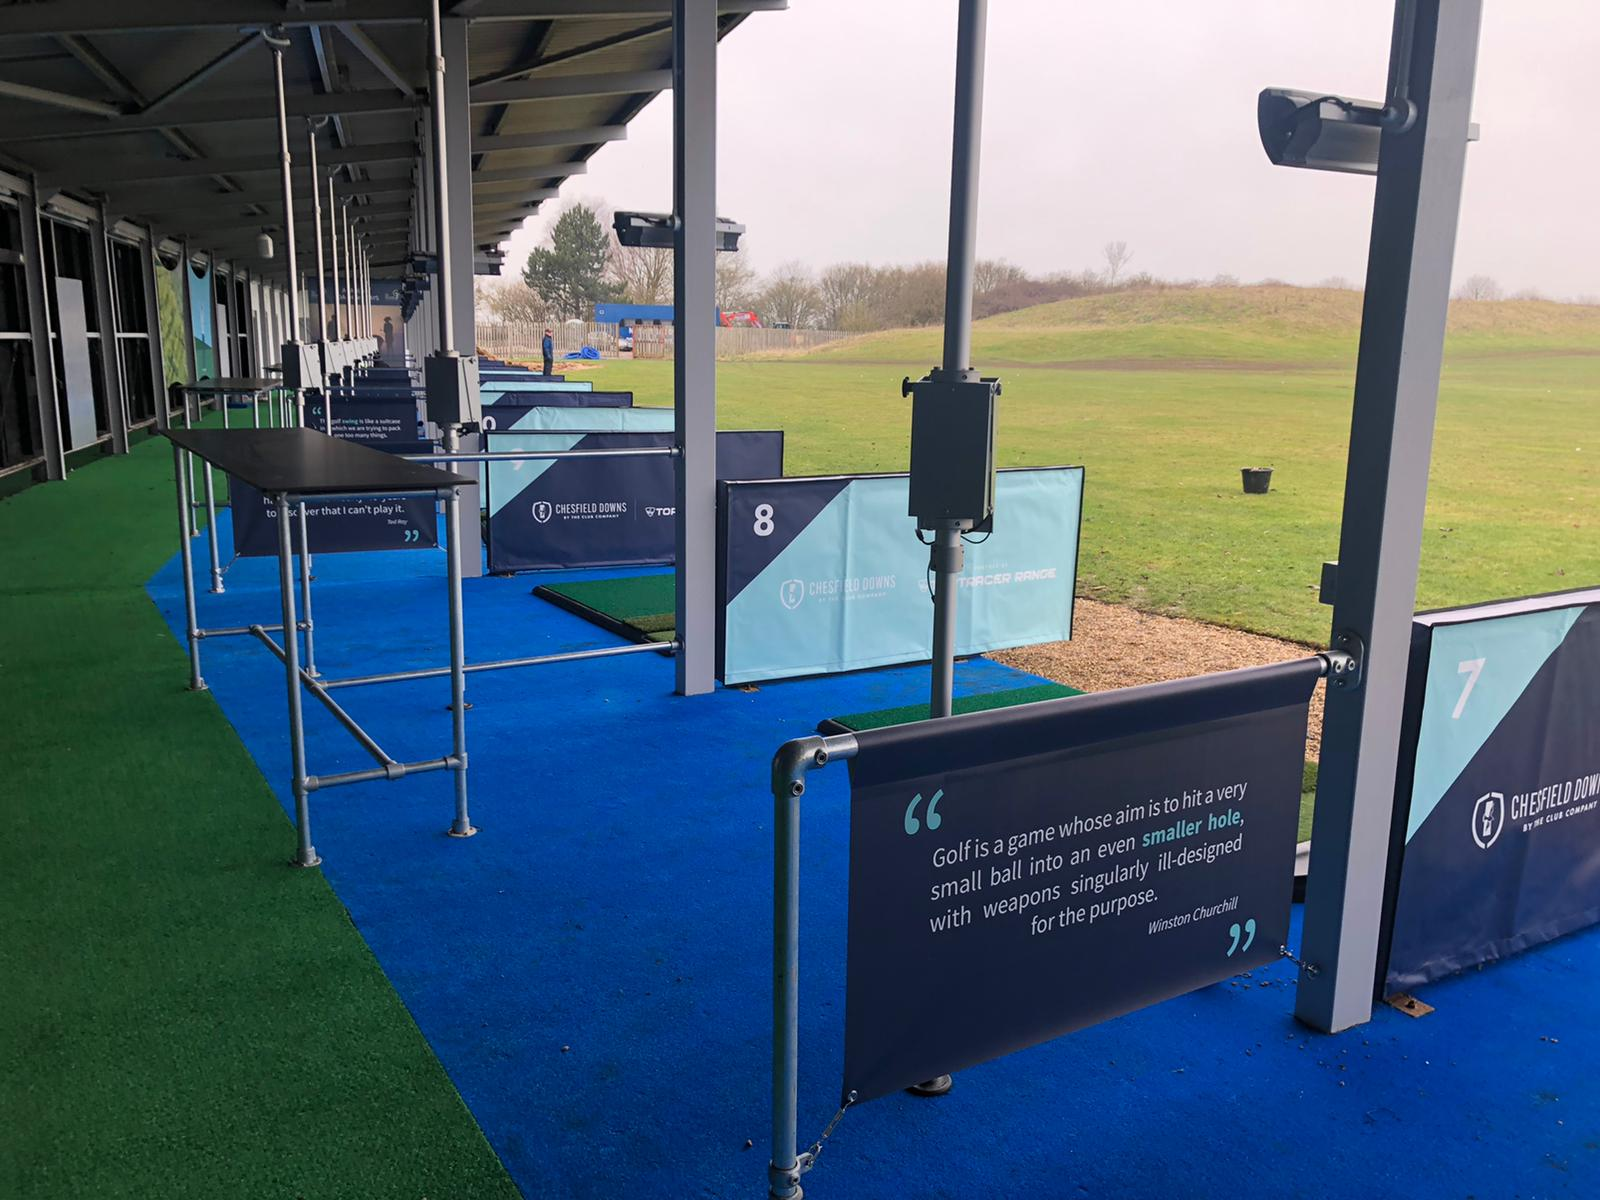 Toptracer bays at Chesfield Downs